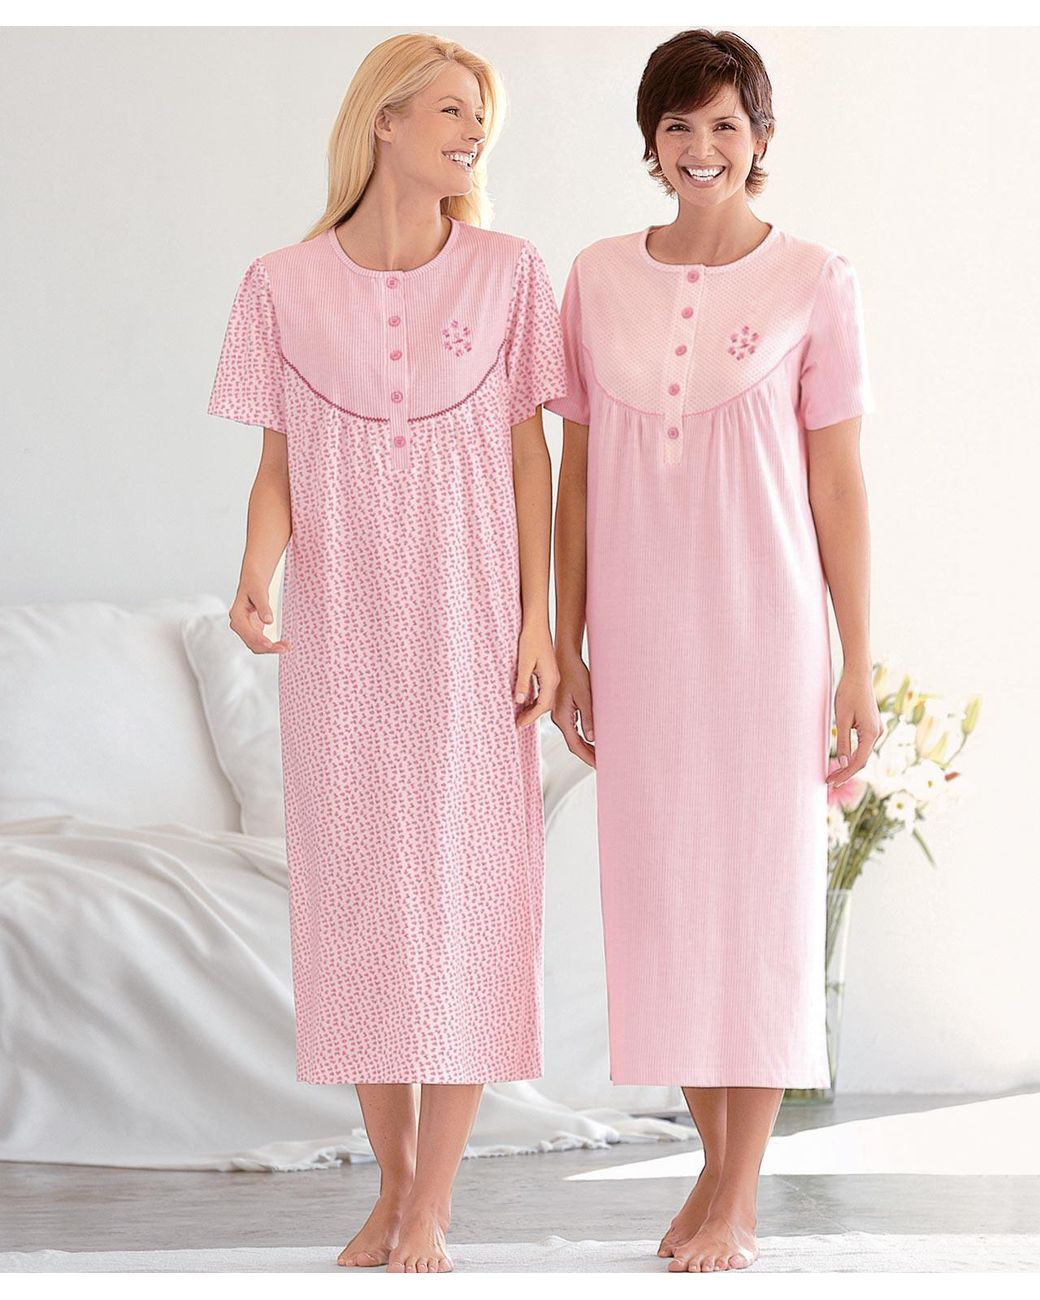 DAMART Pack Of 2 Cotton Nightdresses in Pink/White (Pink) - Lyst